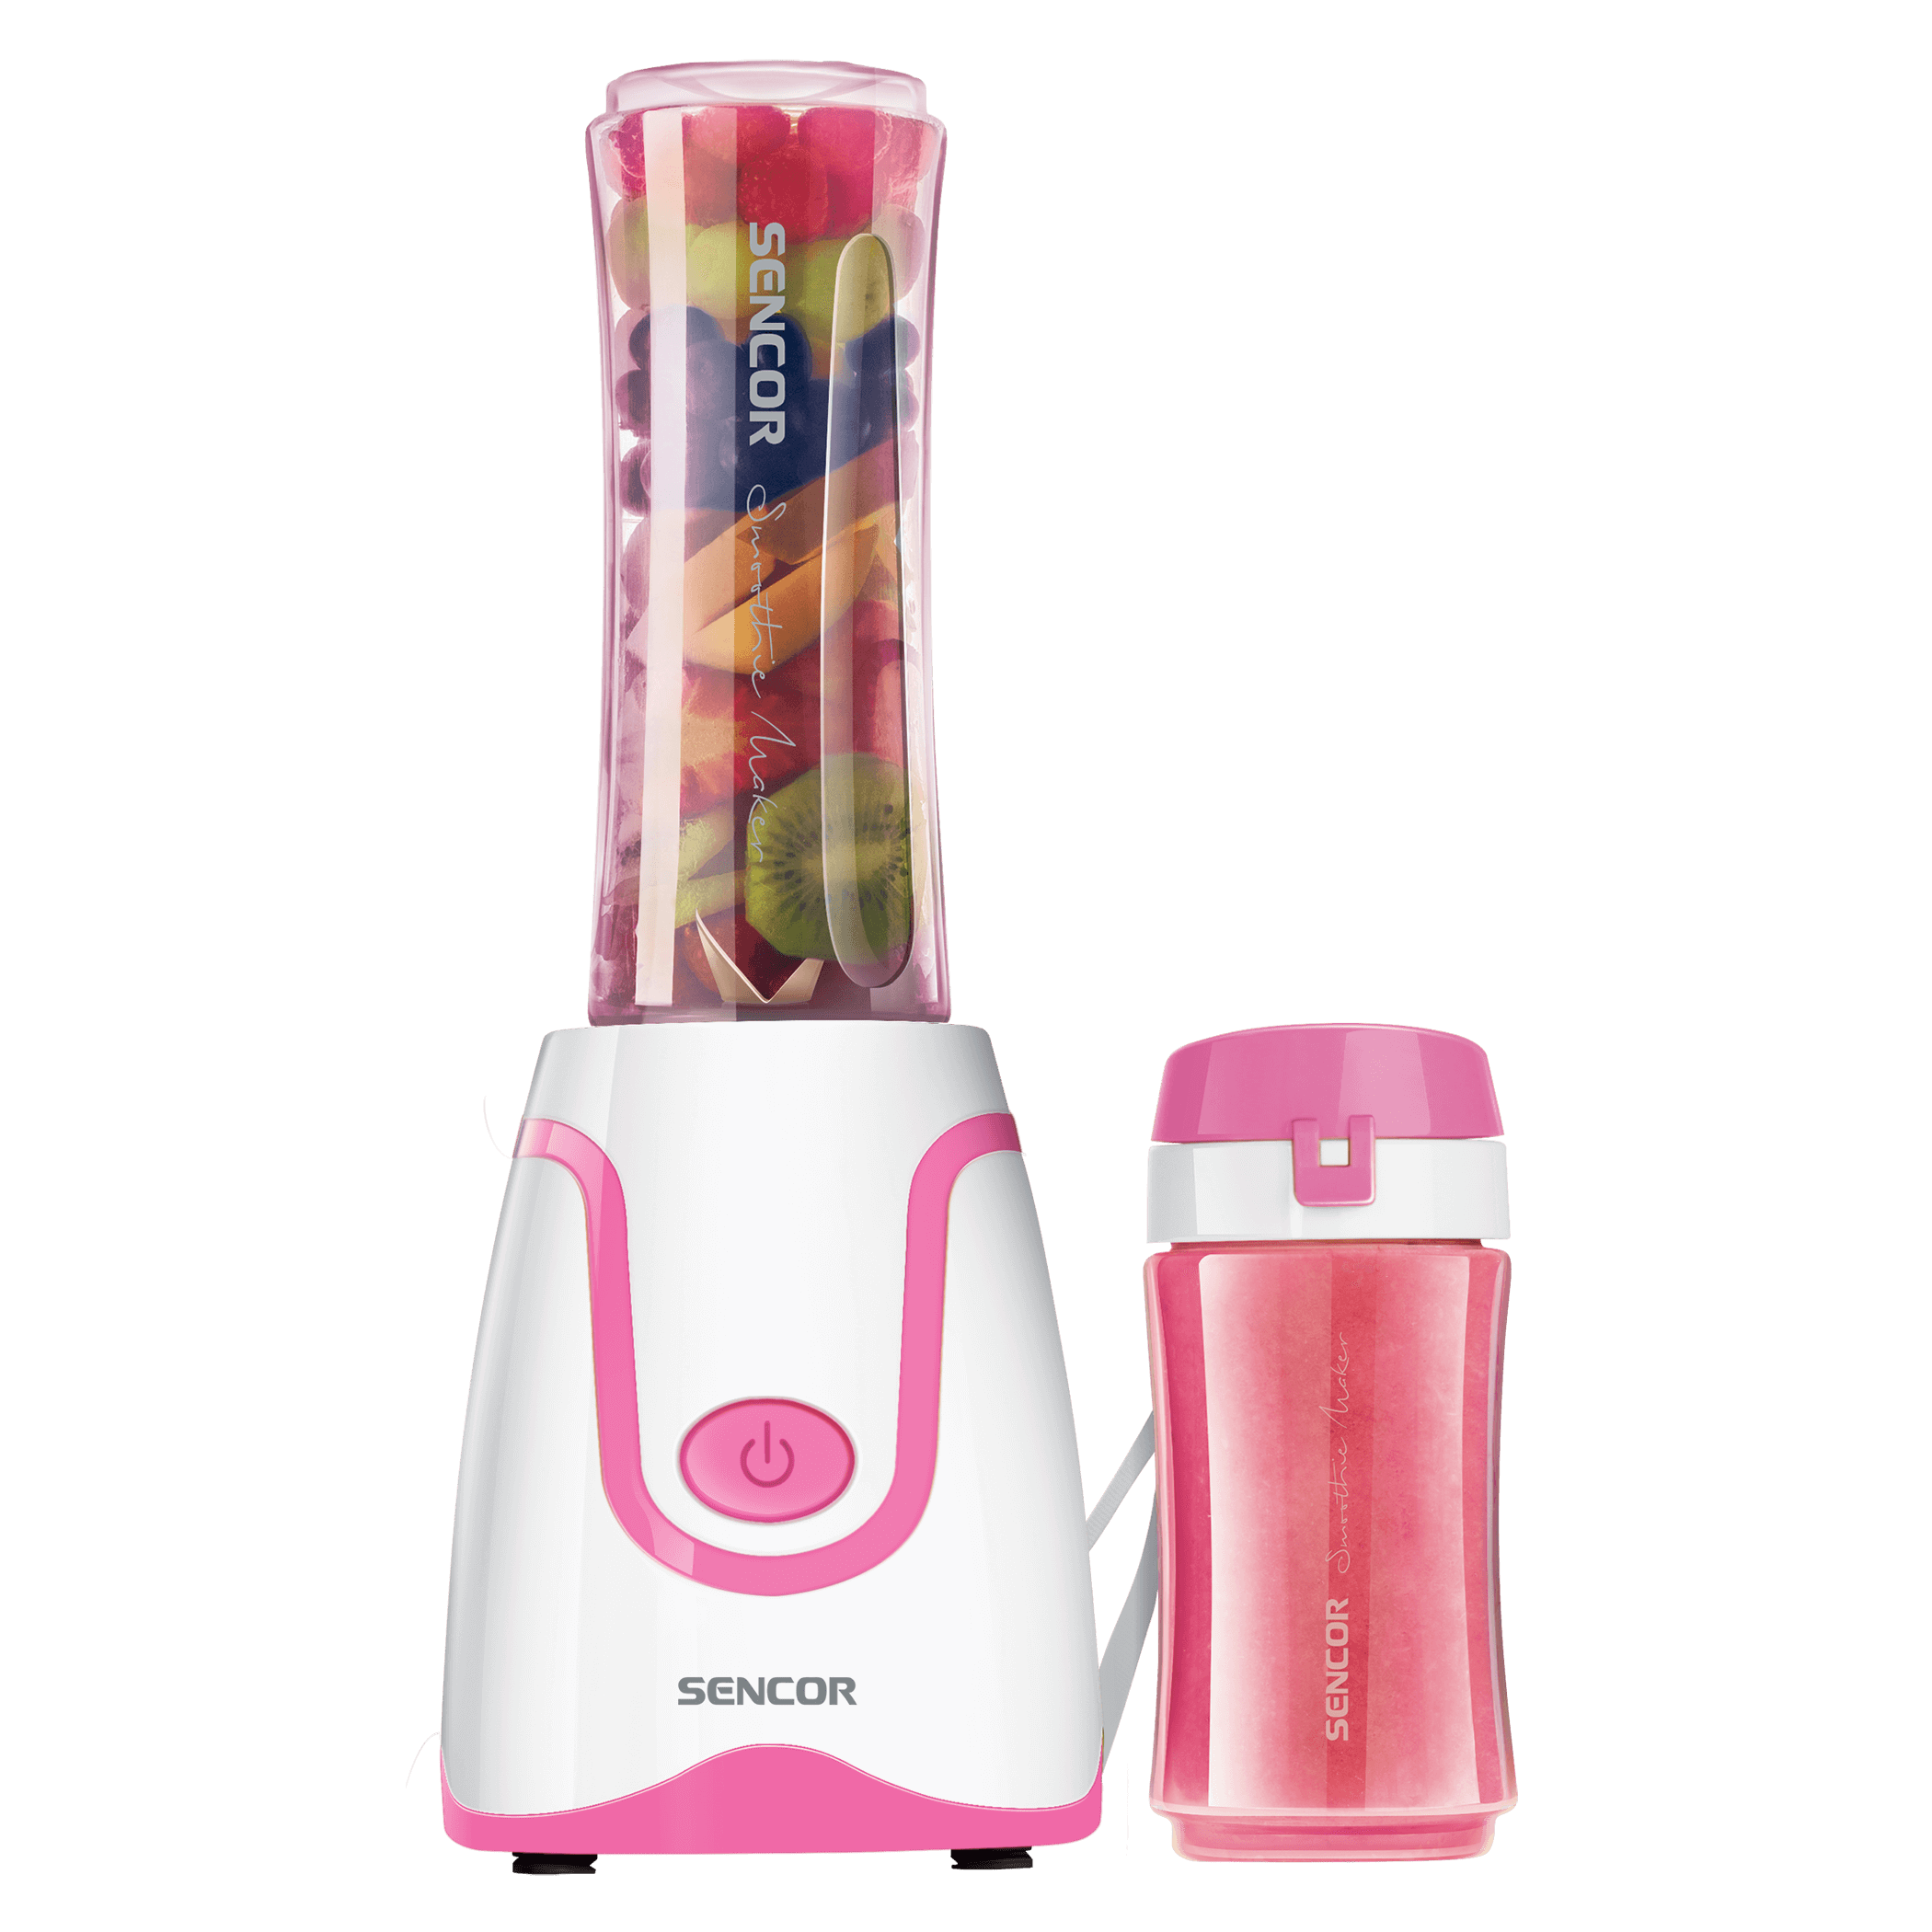 SBL_2218RS_Smoothie_maker_SENCOR.png